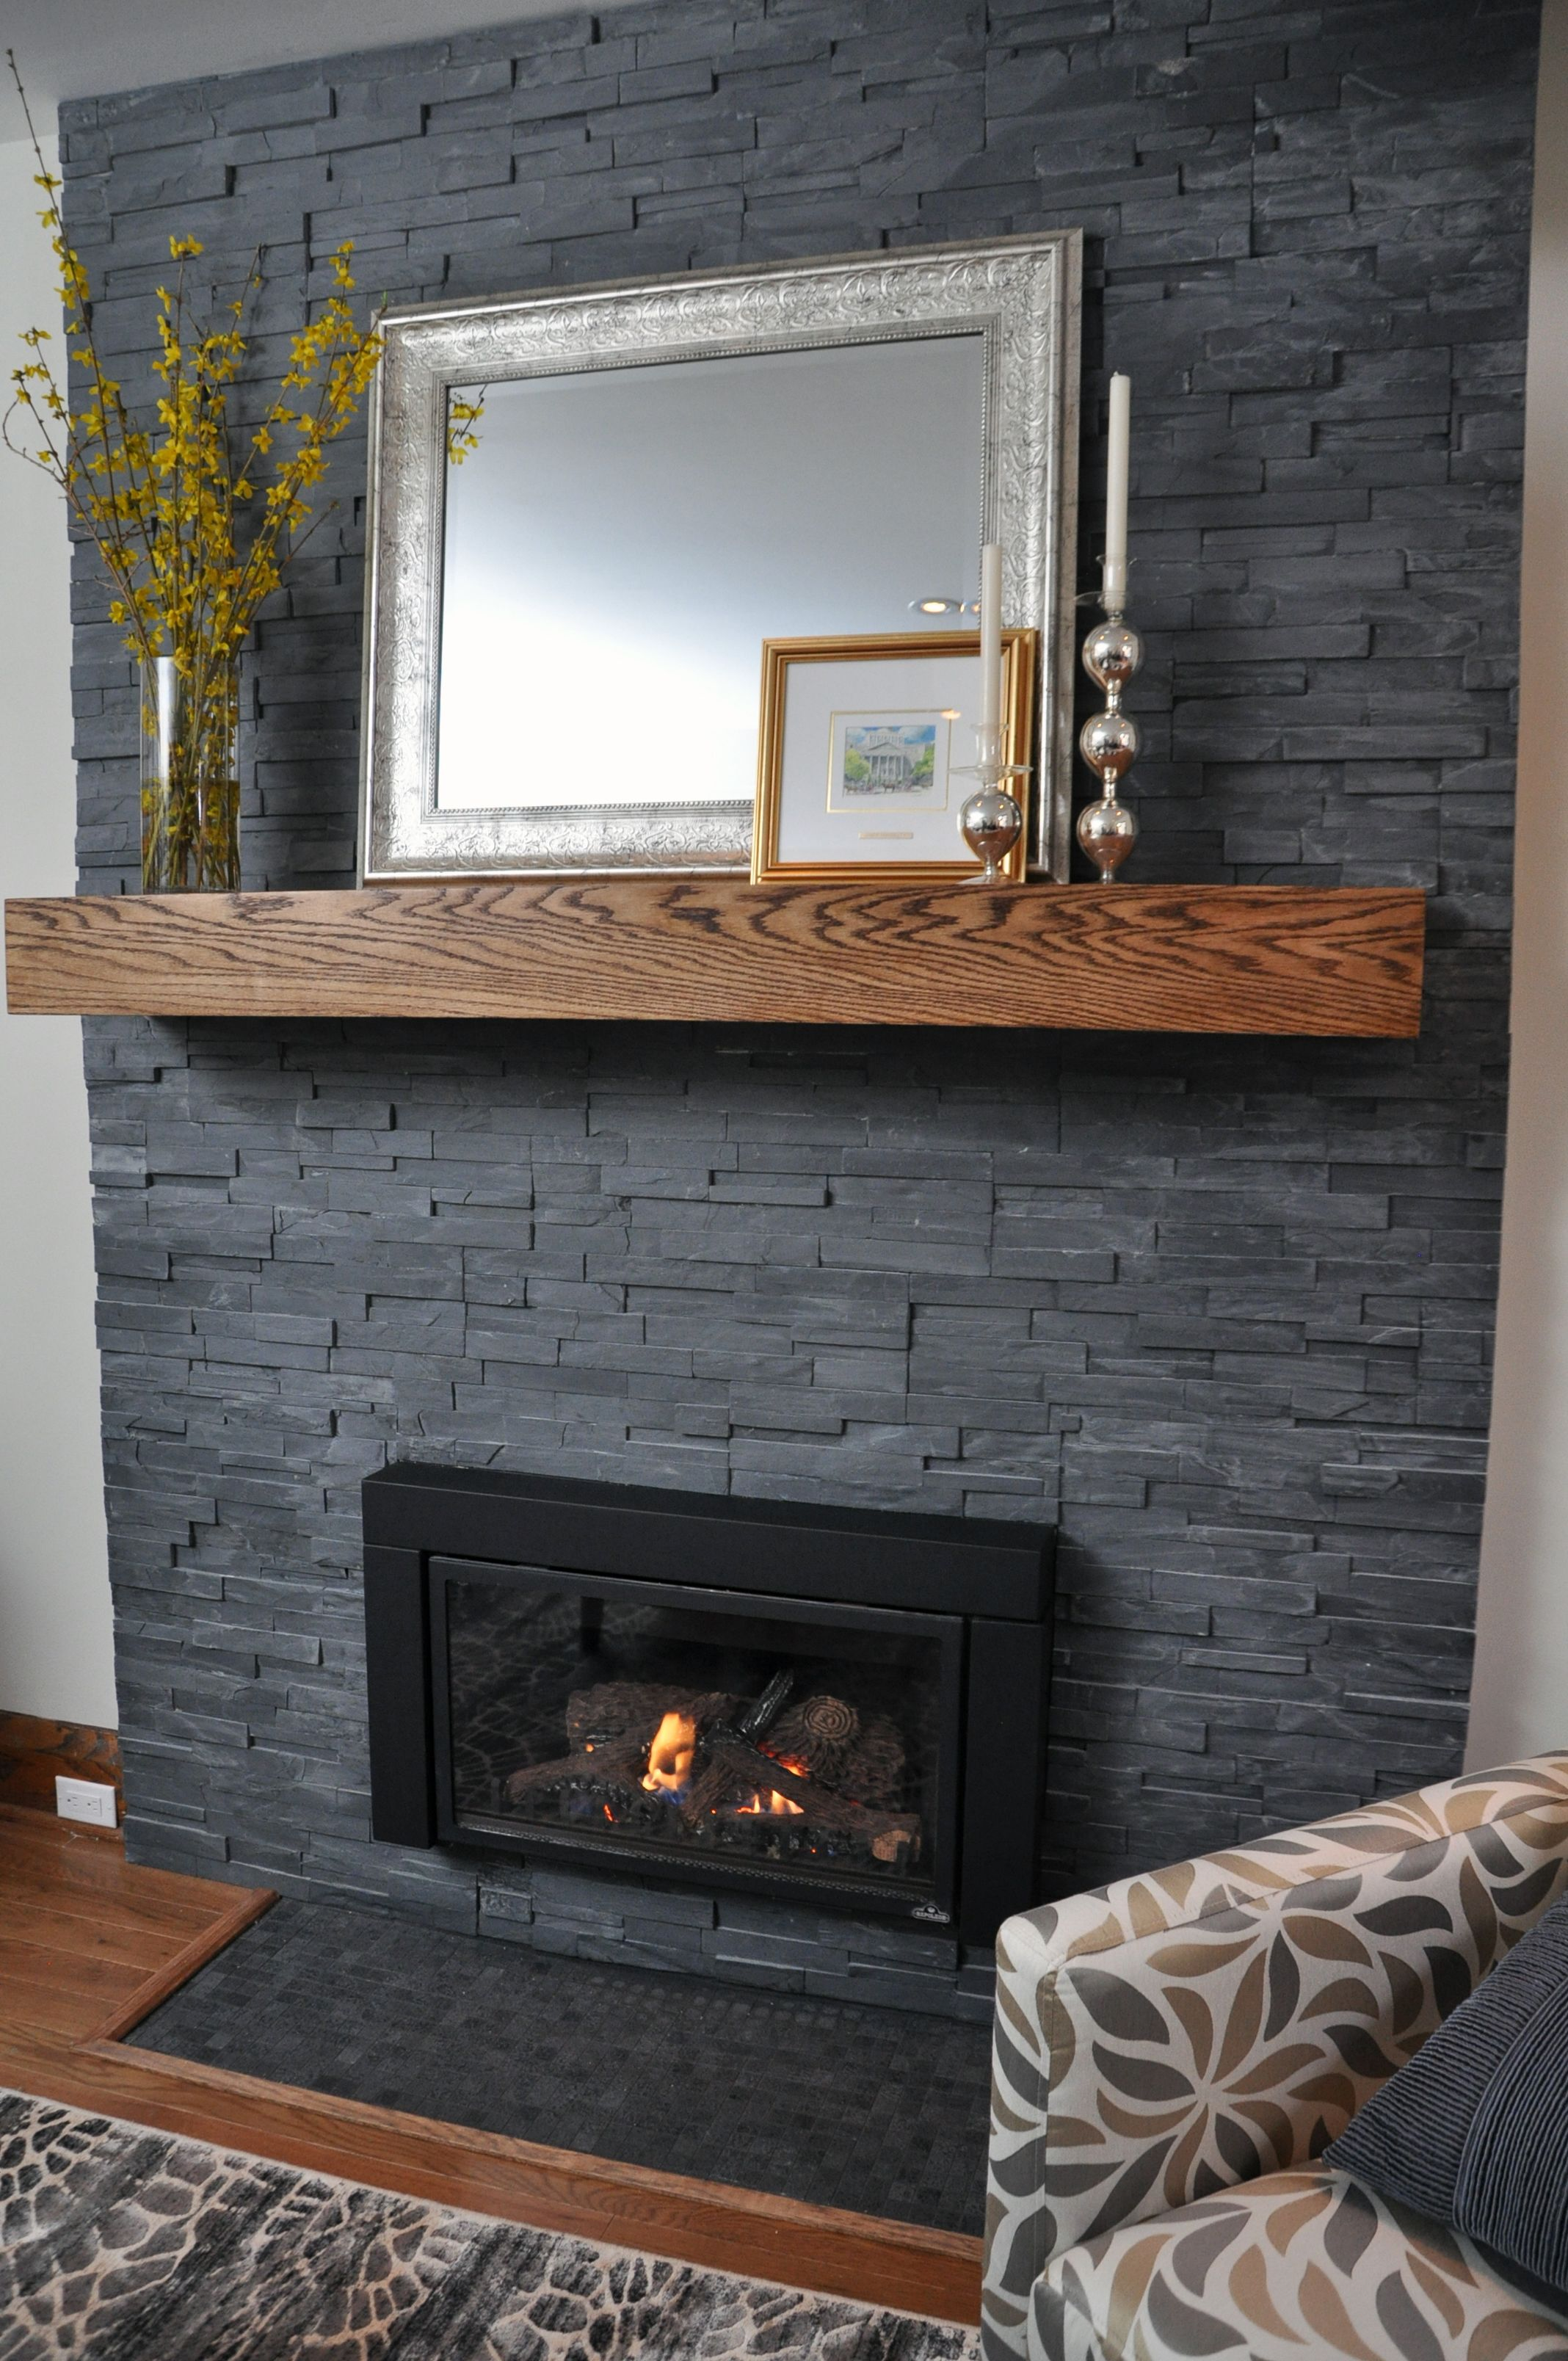 Gray Brick Fireplace Shanty2chic On Instagram Sometimes A Good Coat Of Paint And A